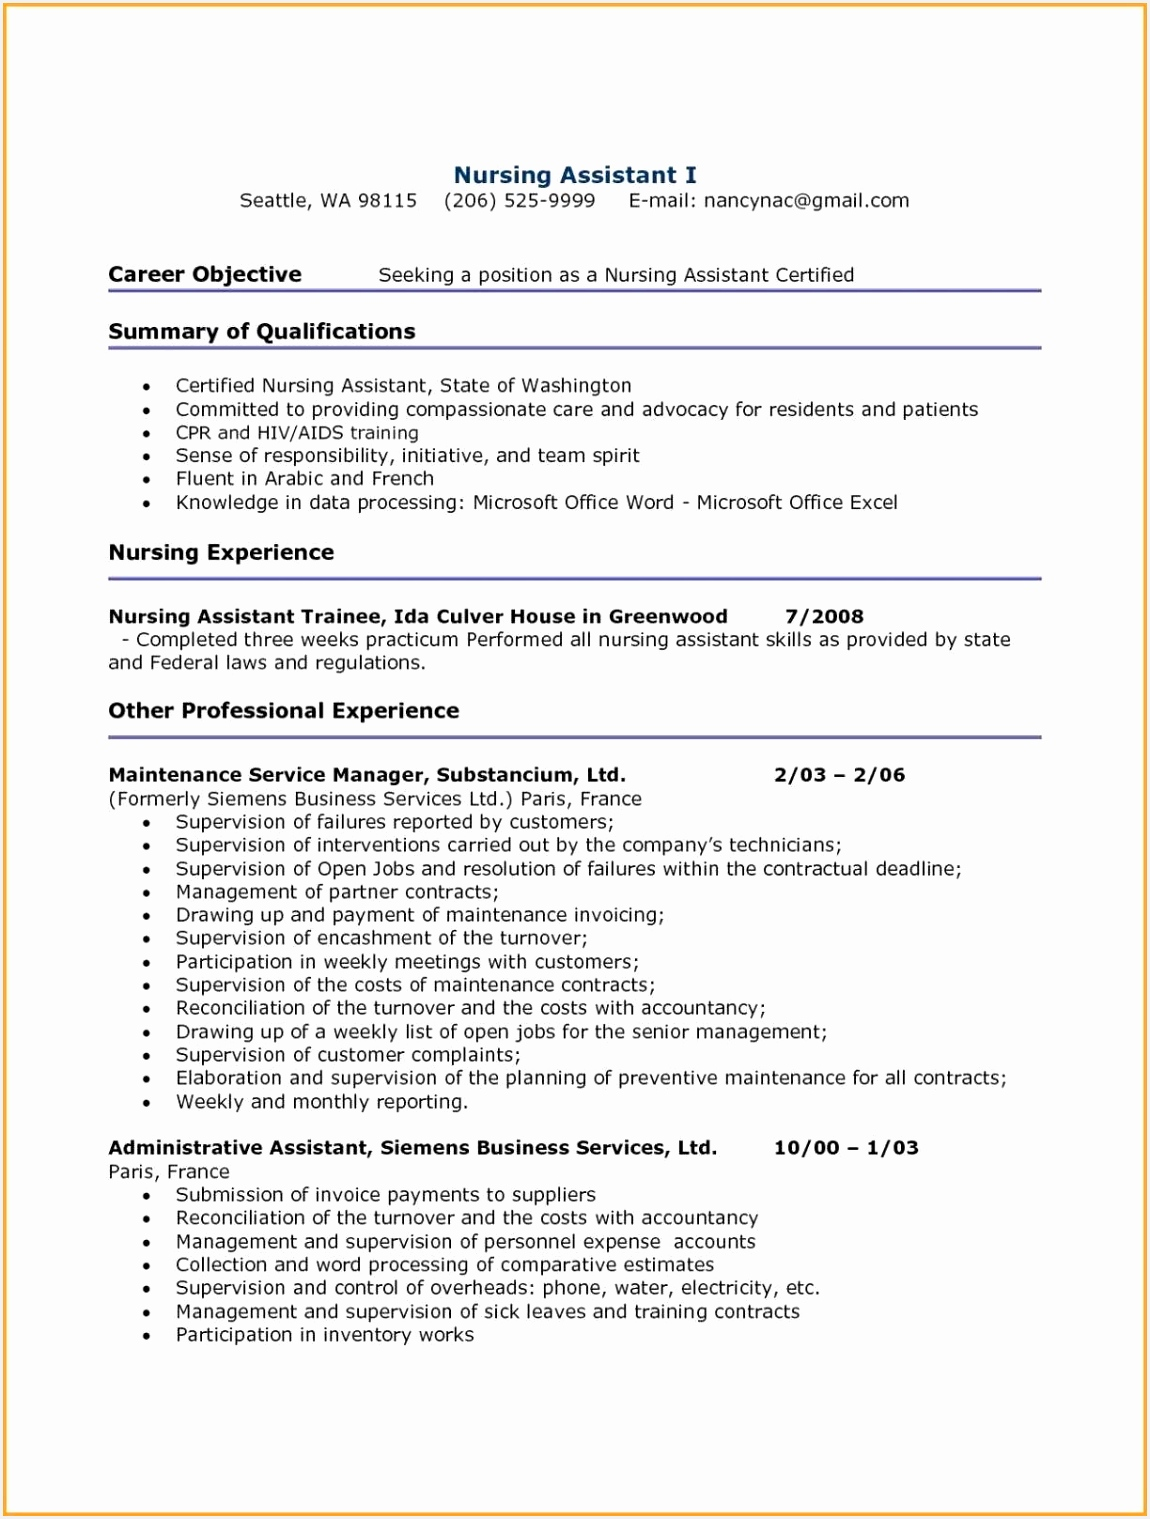 Microsoft Trainer Sample Resume Rduqf Awesome Cover Letter Email format Lovely Email Cover Letters New Resume Of Microsoft Trainer Sample Resume F8yka New Resume Examples Skills Best Skills and Interests Resume Sample